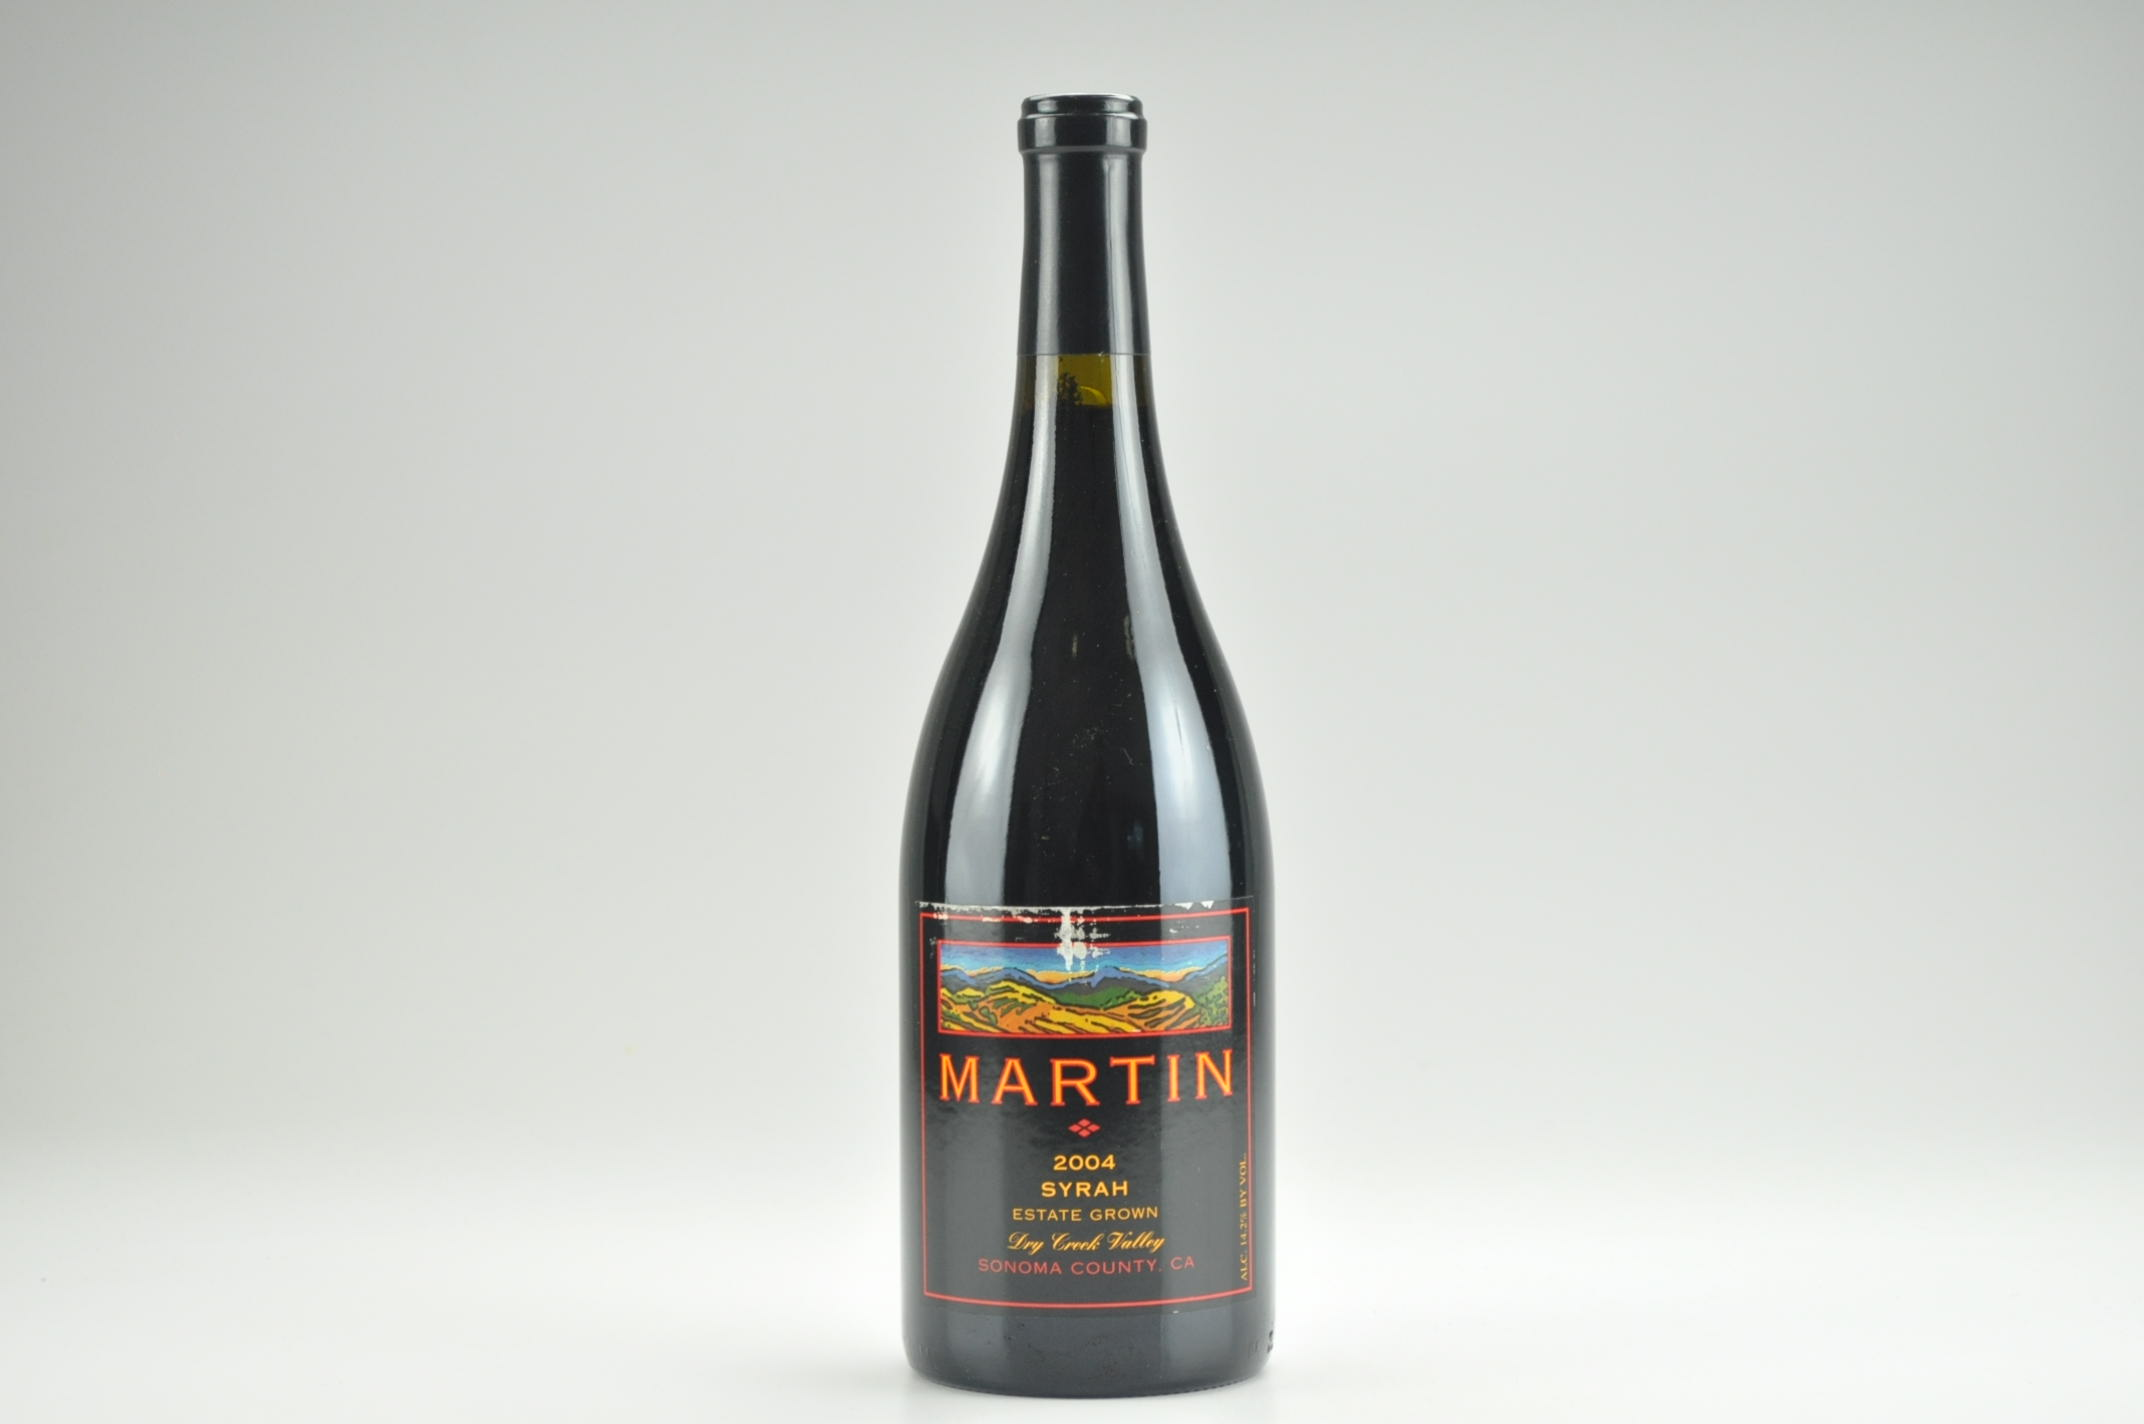 2004 Martin Syrah Estate, Dry Creek Valley